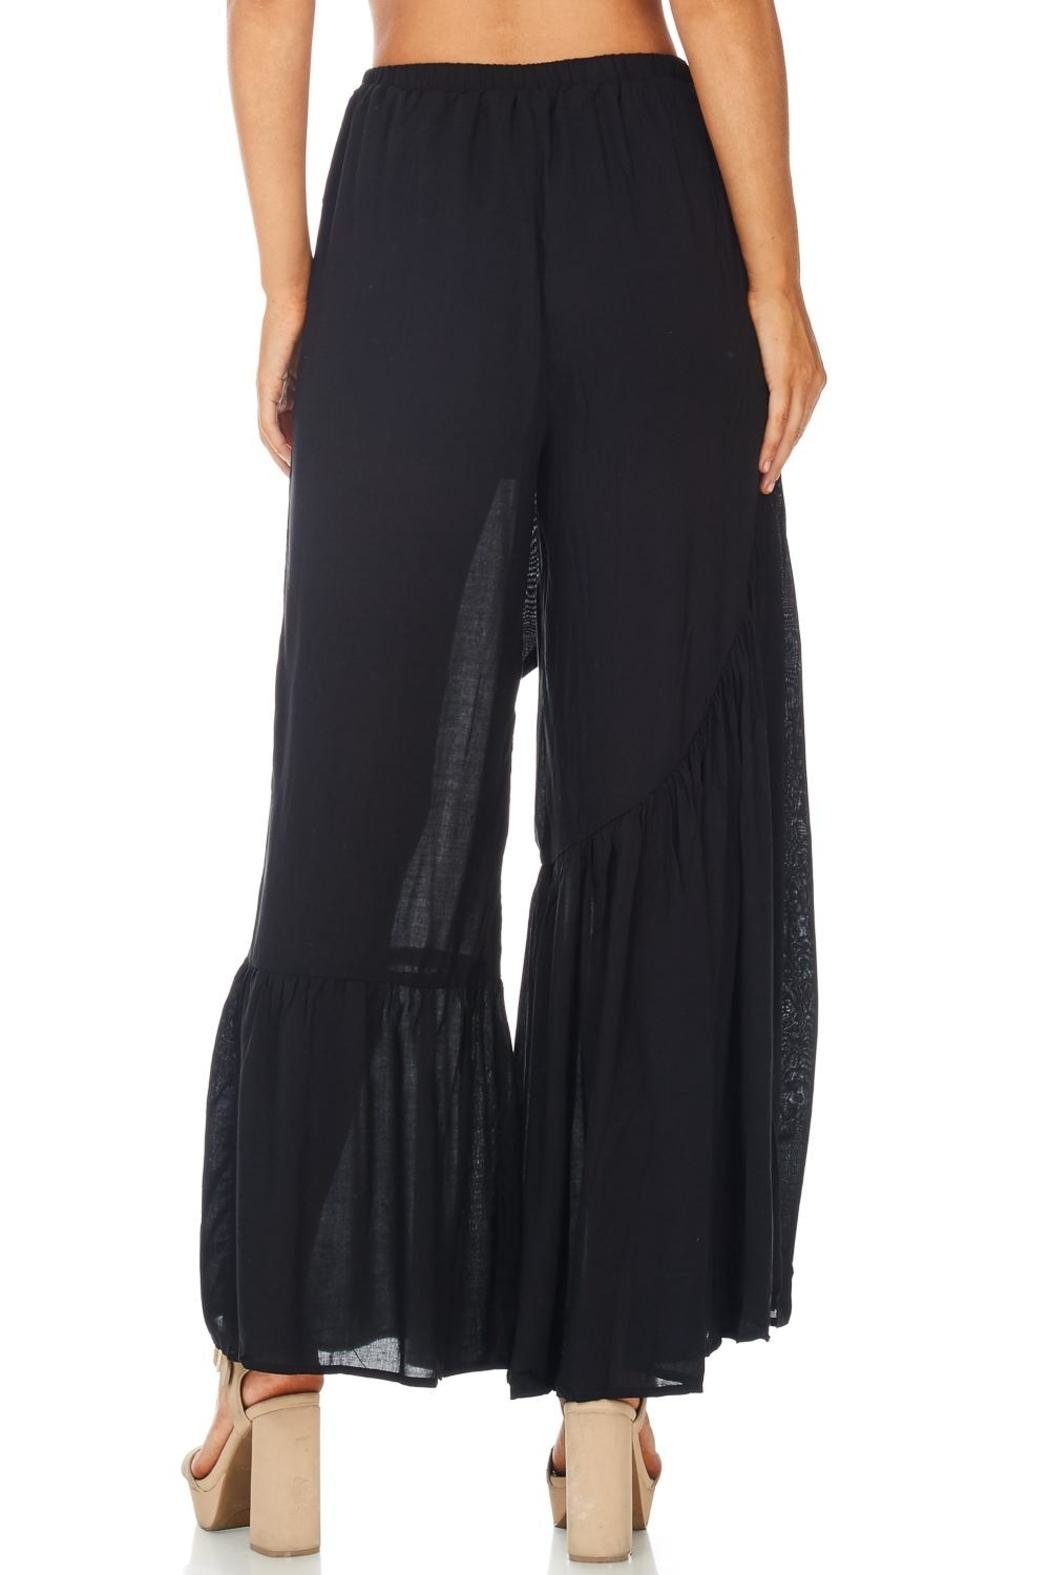 Favlux Wide Ruffle Leg Pants - Side Cropped Image